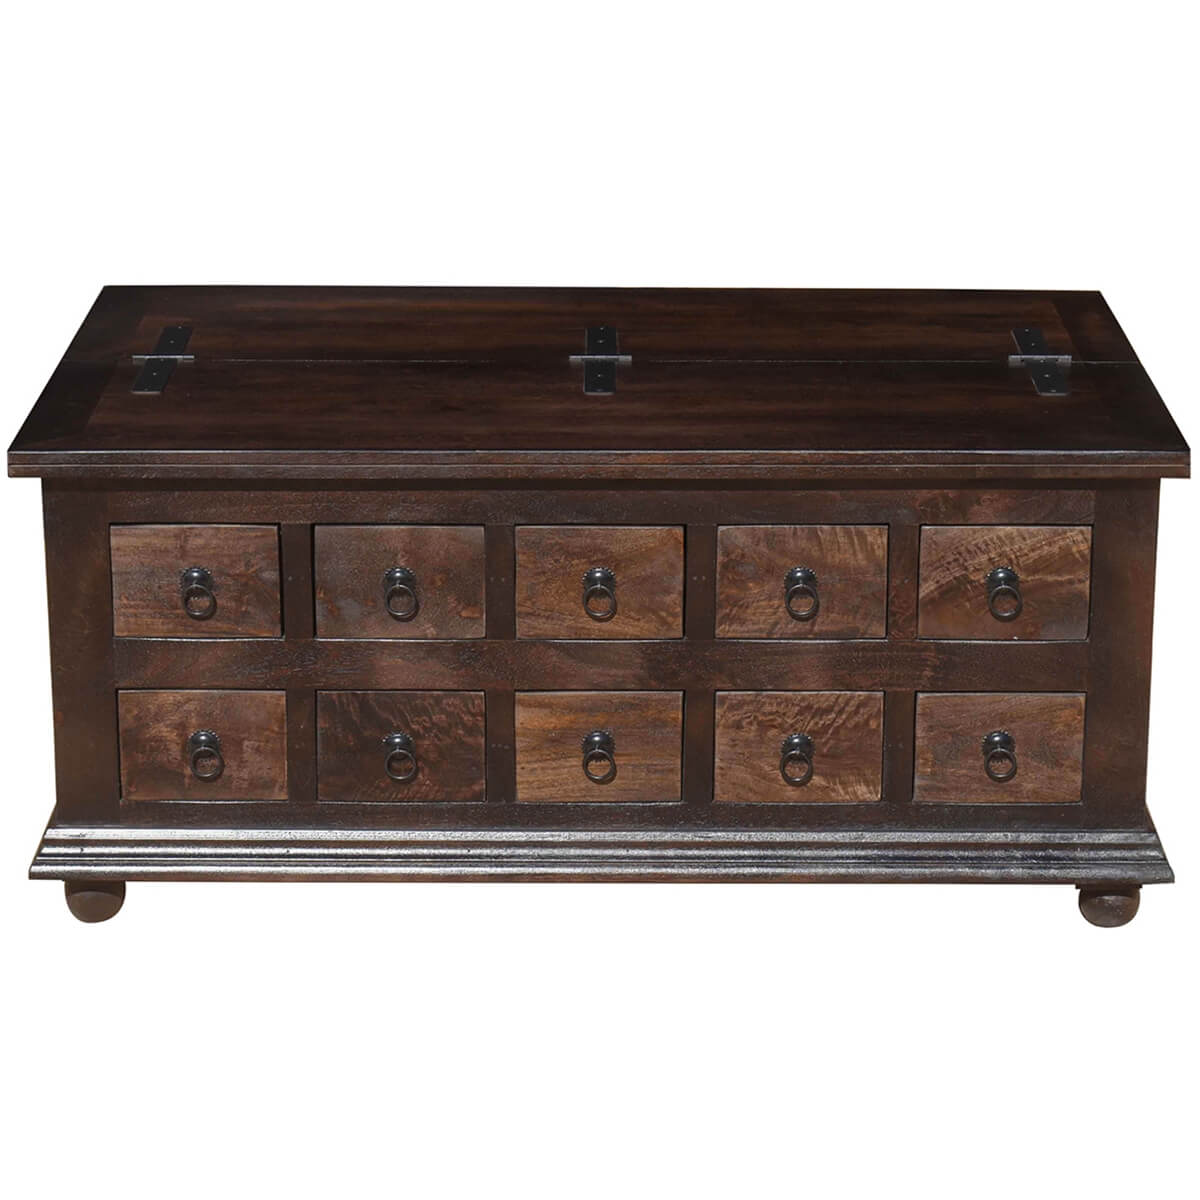 Rustic wood storage coffee table trunk with pillbox drawers